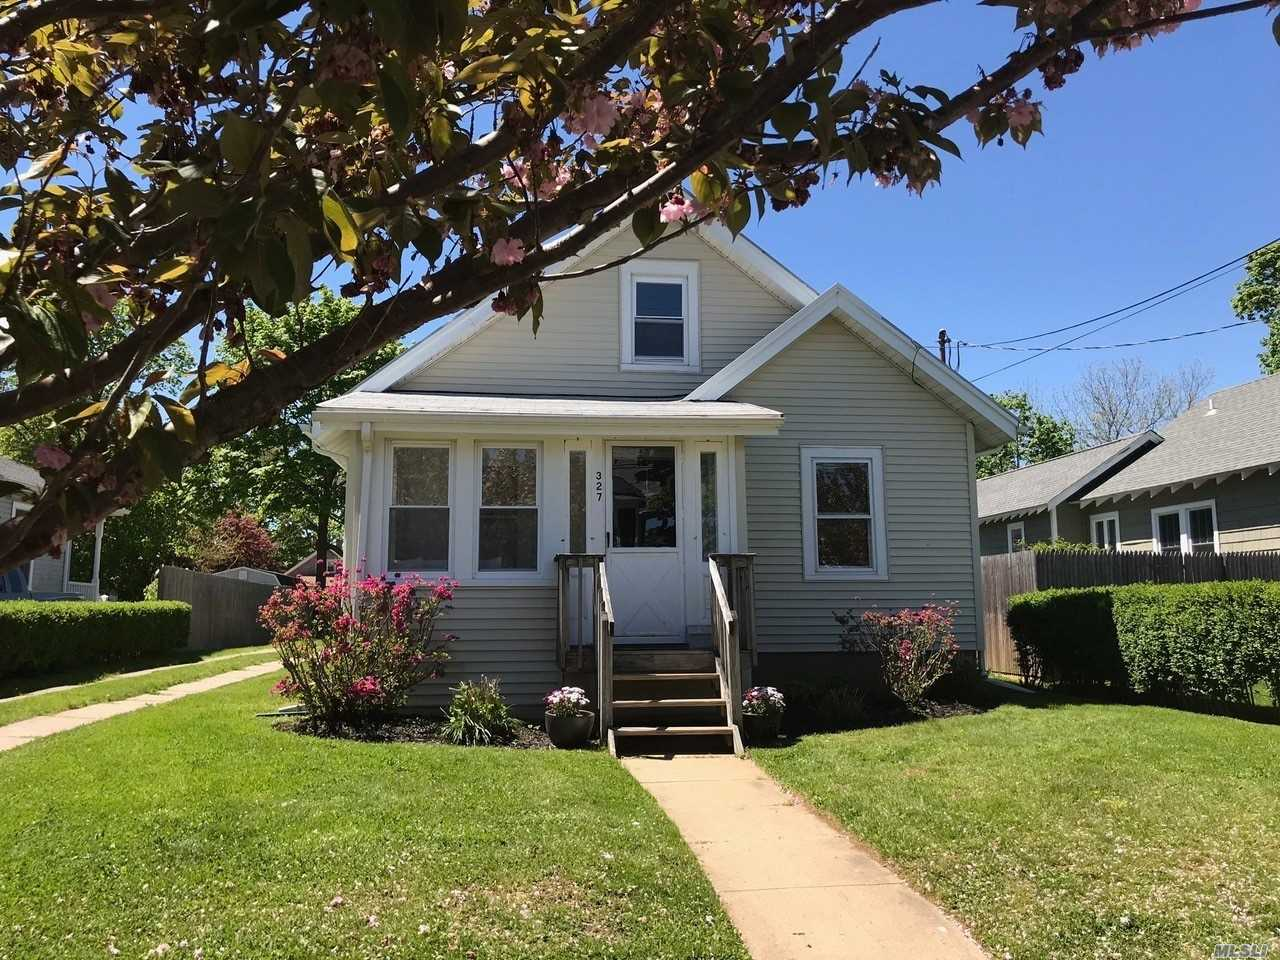 Renovated Vintage 40'S Bungalow. New Kitchen. New Bath. 2 Enclosed Porches. Airconditioning. Nice Yard. 3 Blocks To Bay Beach. 4 Blocks To Nyc Transportation. 6 Blocks To Village Shopping, Restaurants And Marina. Md-Ld $16K; June $5K; July $6K, Aug-Ld $7K.